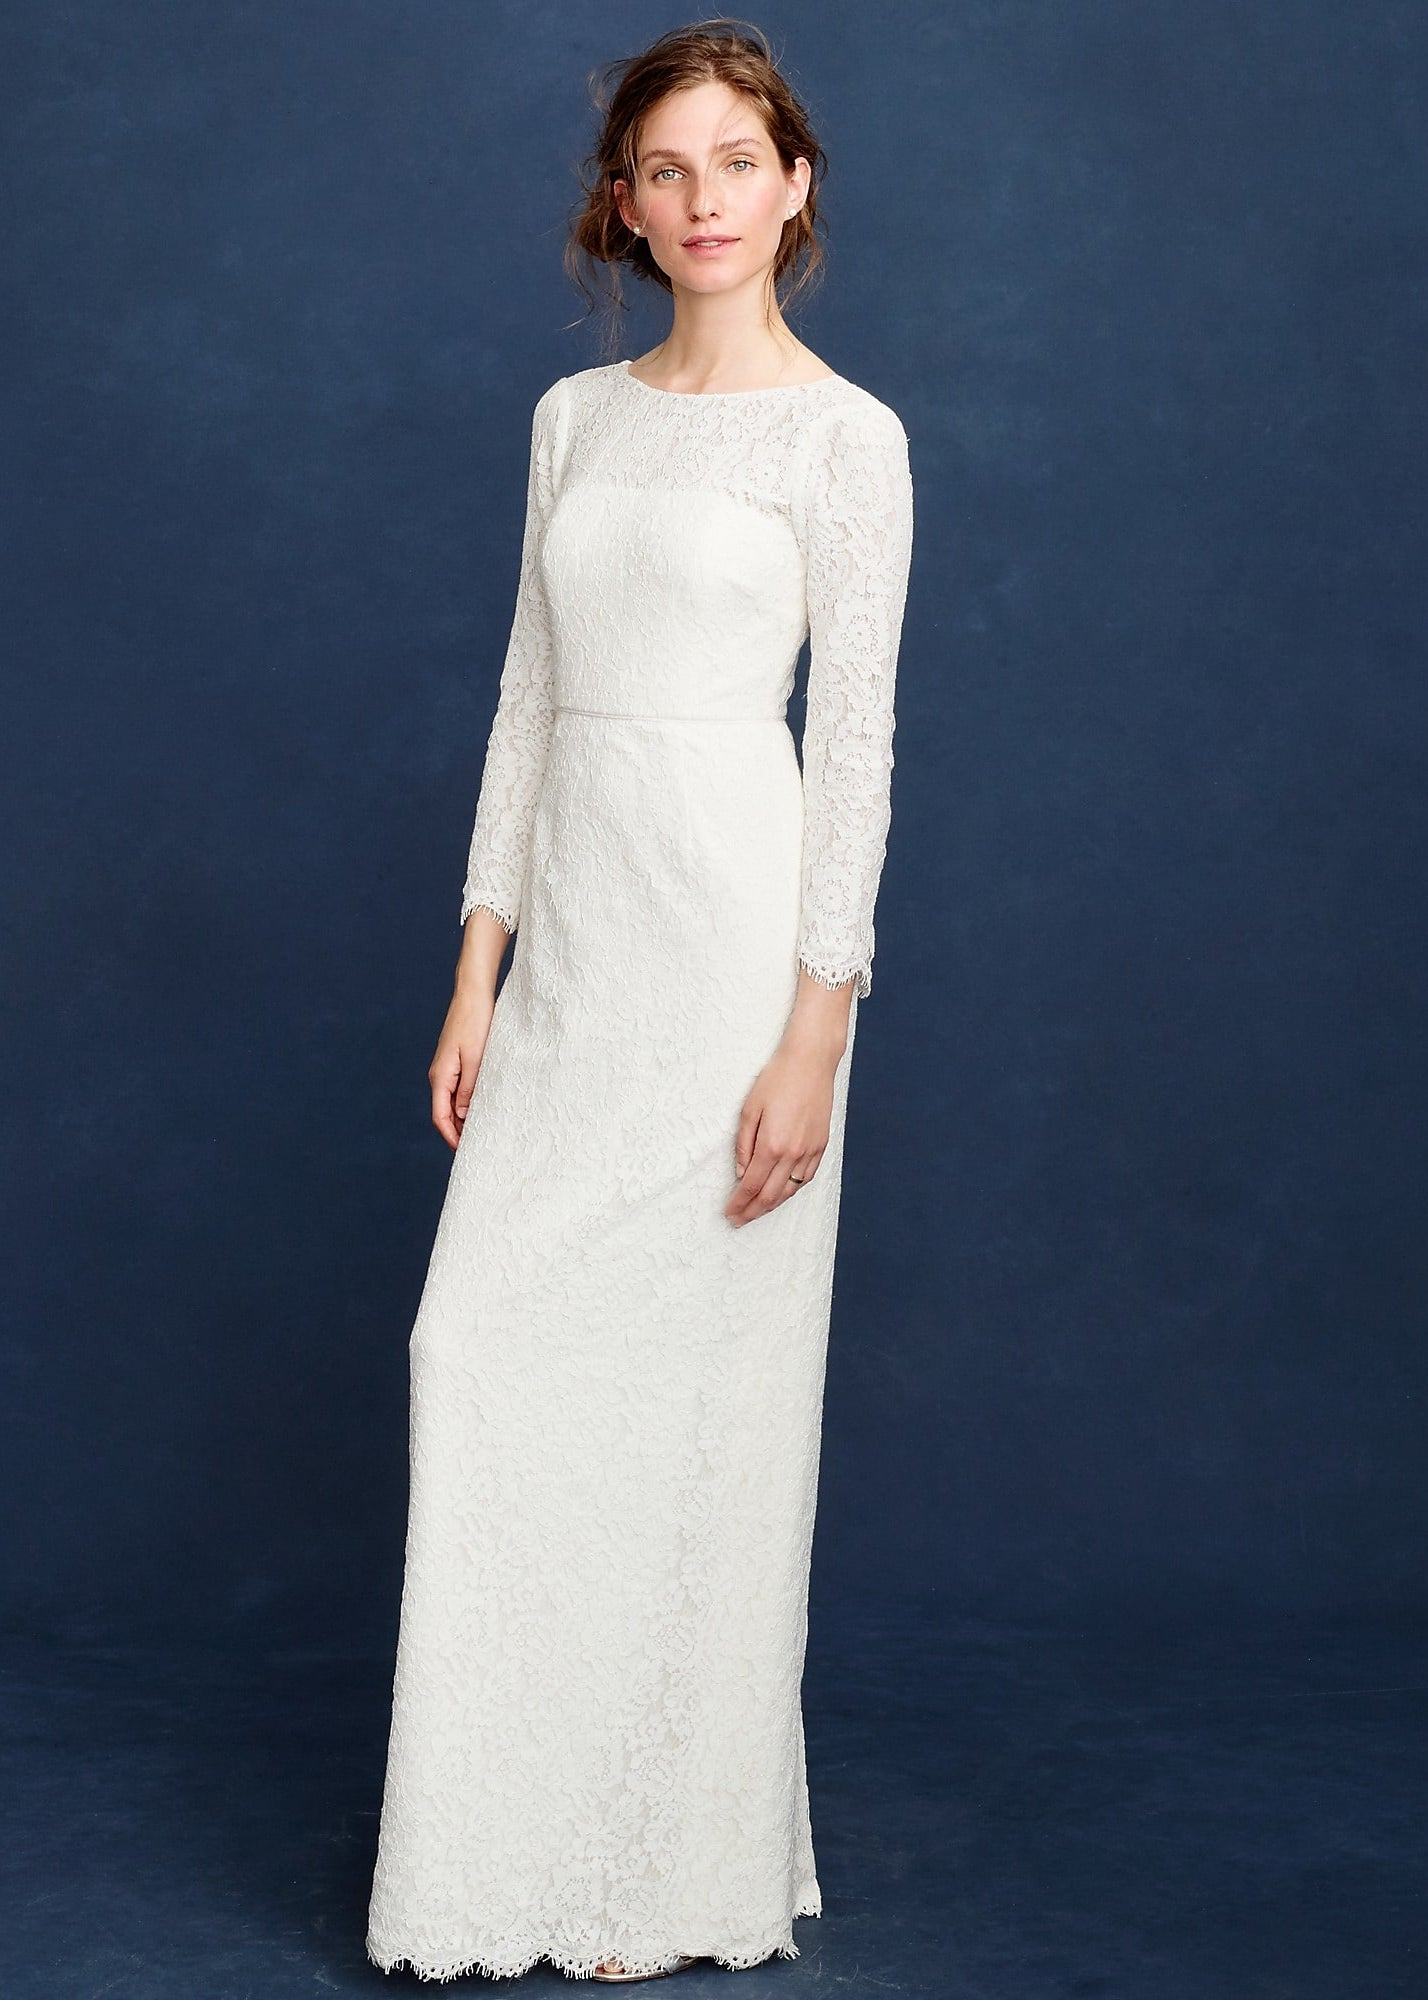 Purchase > j crew wedding dress, Up to 20 OFF